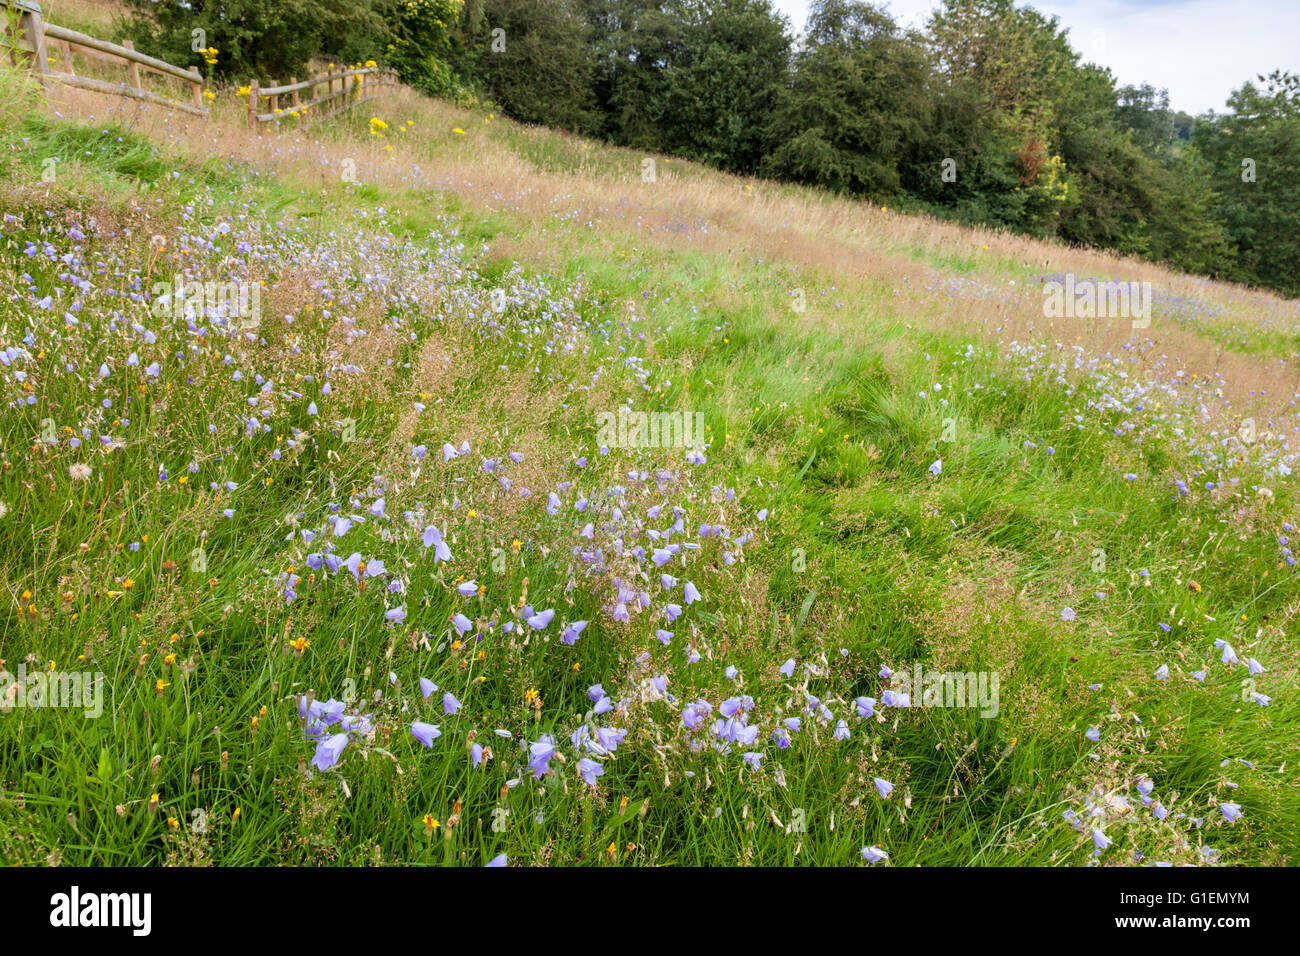 Hillside wild flower meadow with bluebells and other flowers in Summer, Derbyshire , England, UK Stock Photo